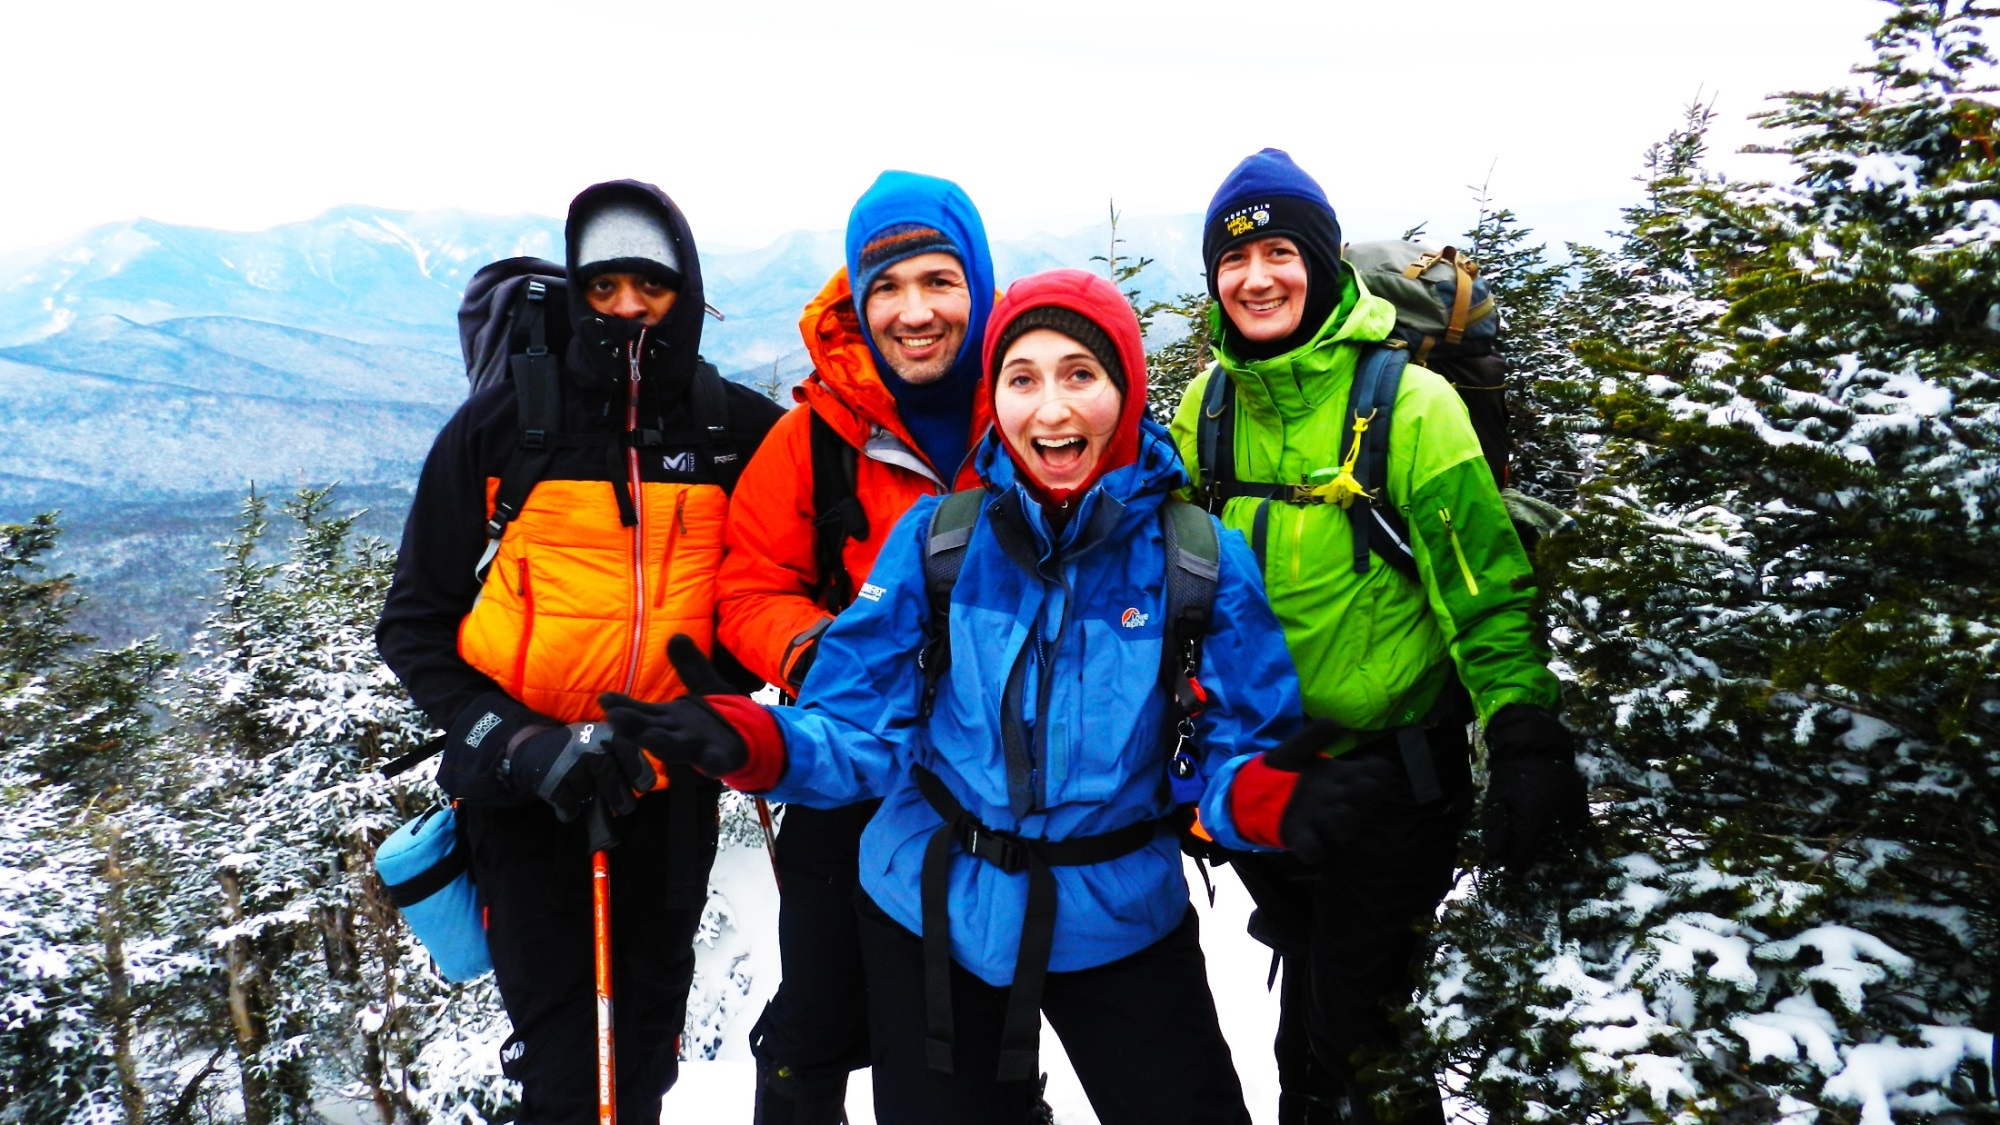 Book your #snowshoeing day TRIP by Wed, Jan 17 #TOhiking @OntarioParks #Parkbus #HuntsvilleON